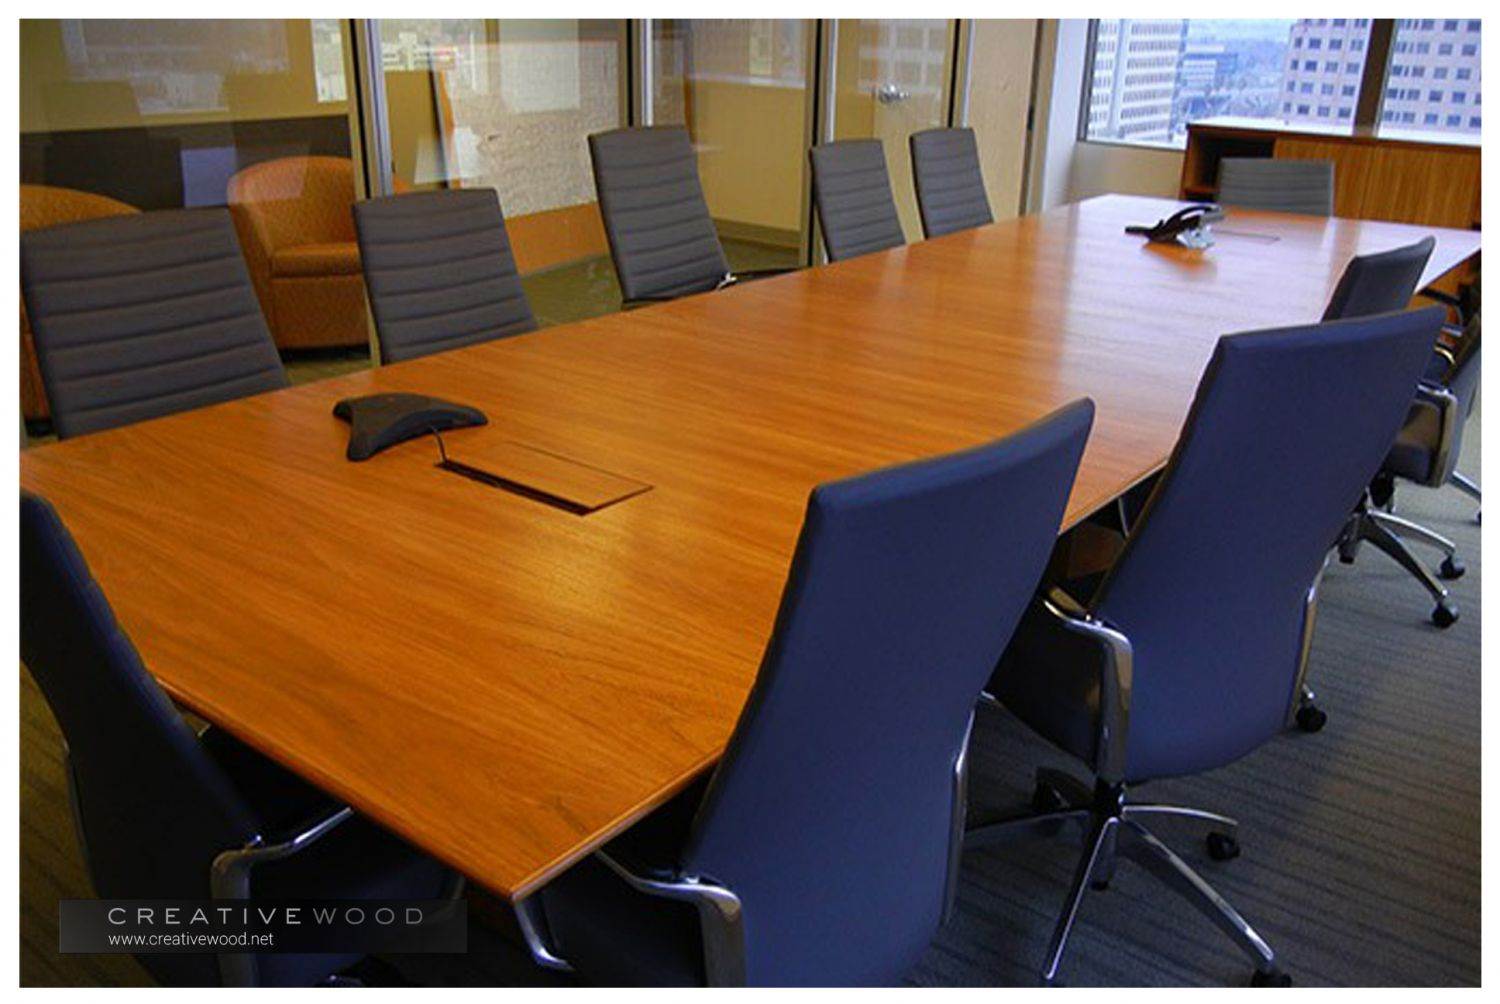 tables adjaye knoll side conference aluminum product c meeting chair with lsm david series table washington leg l skeleton room